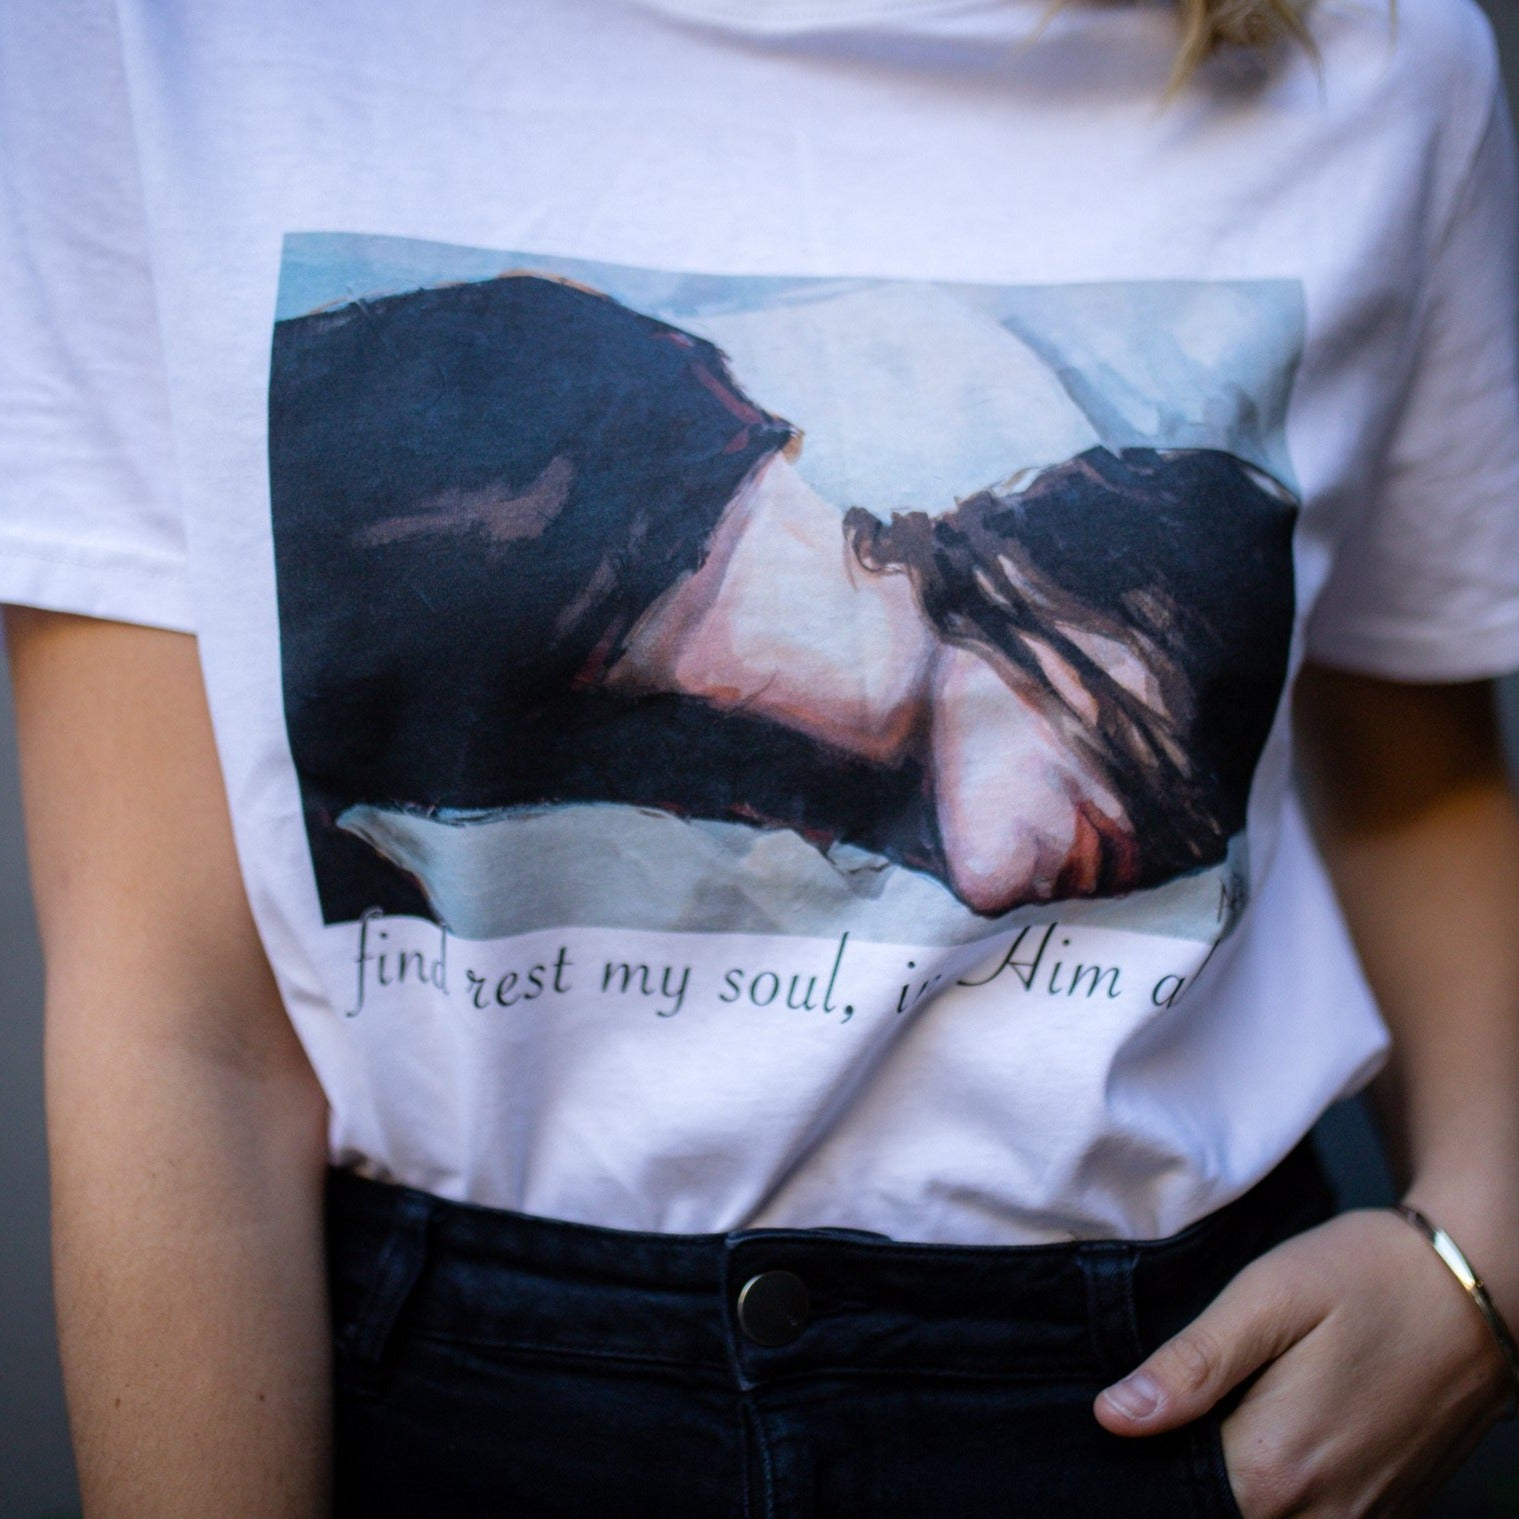 T-shirt 1 - Find Rest